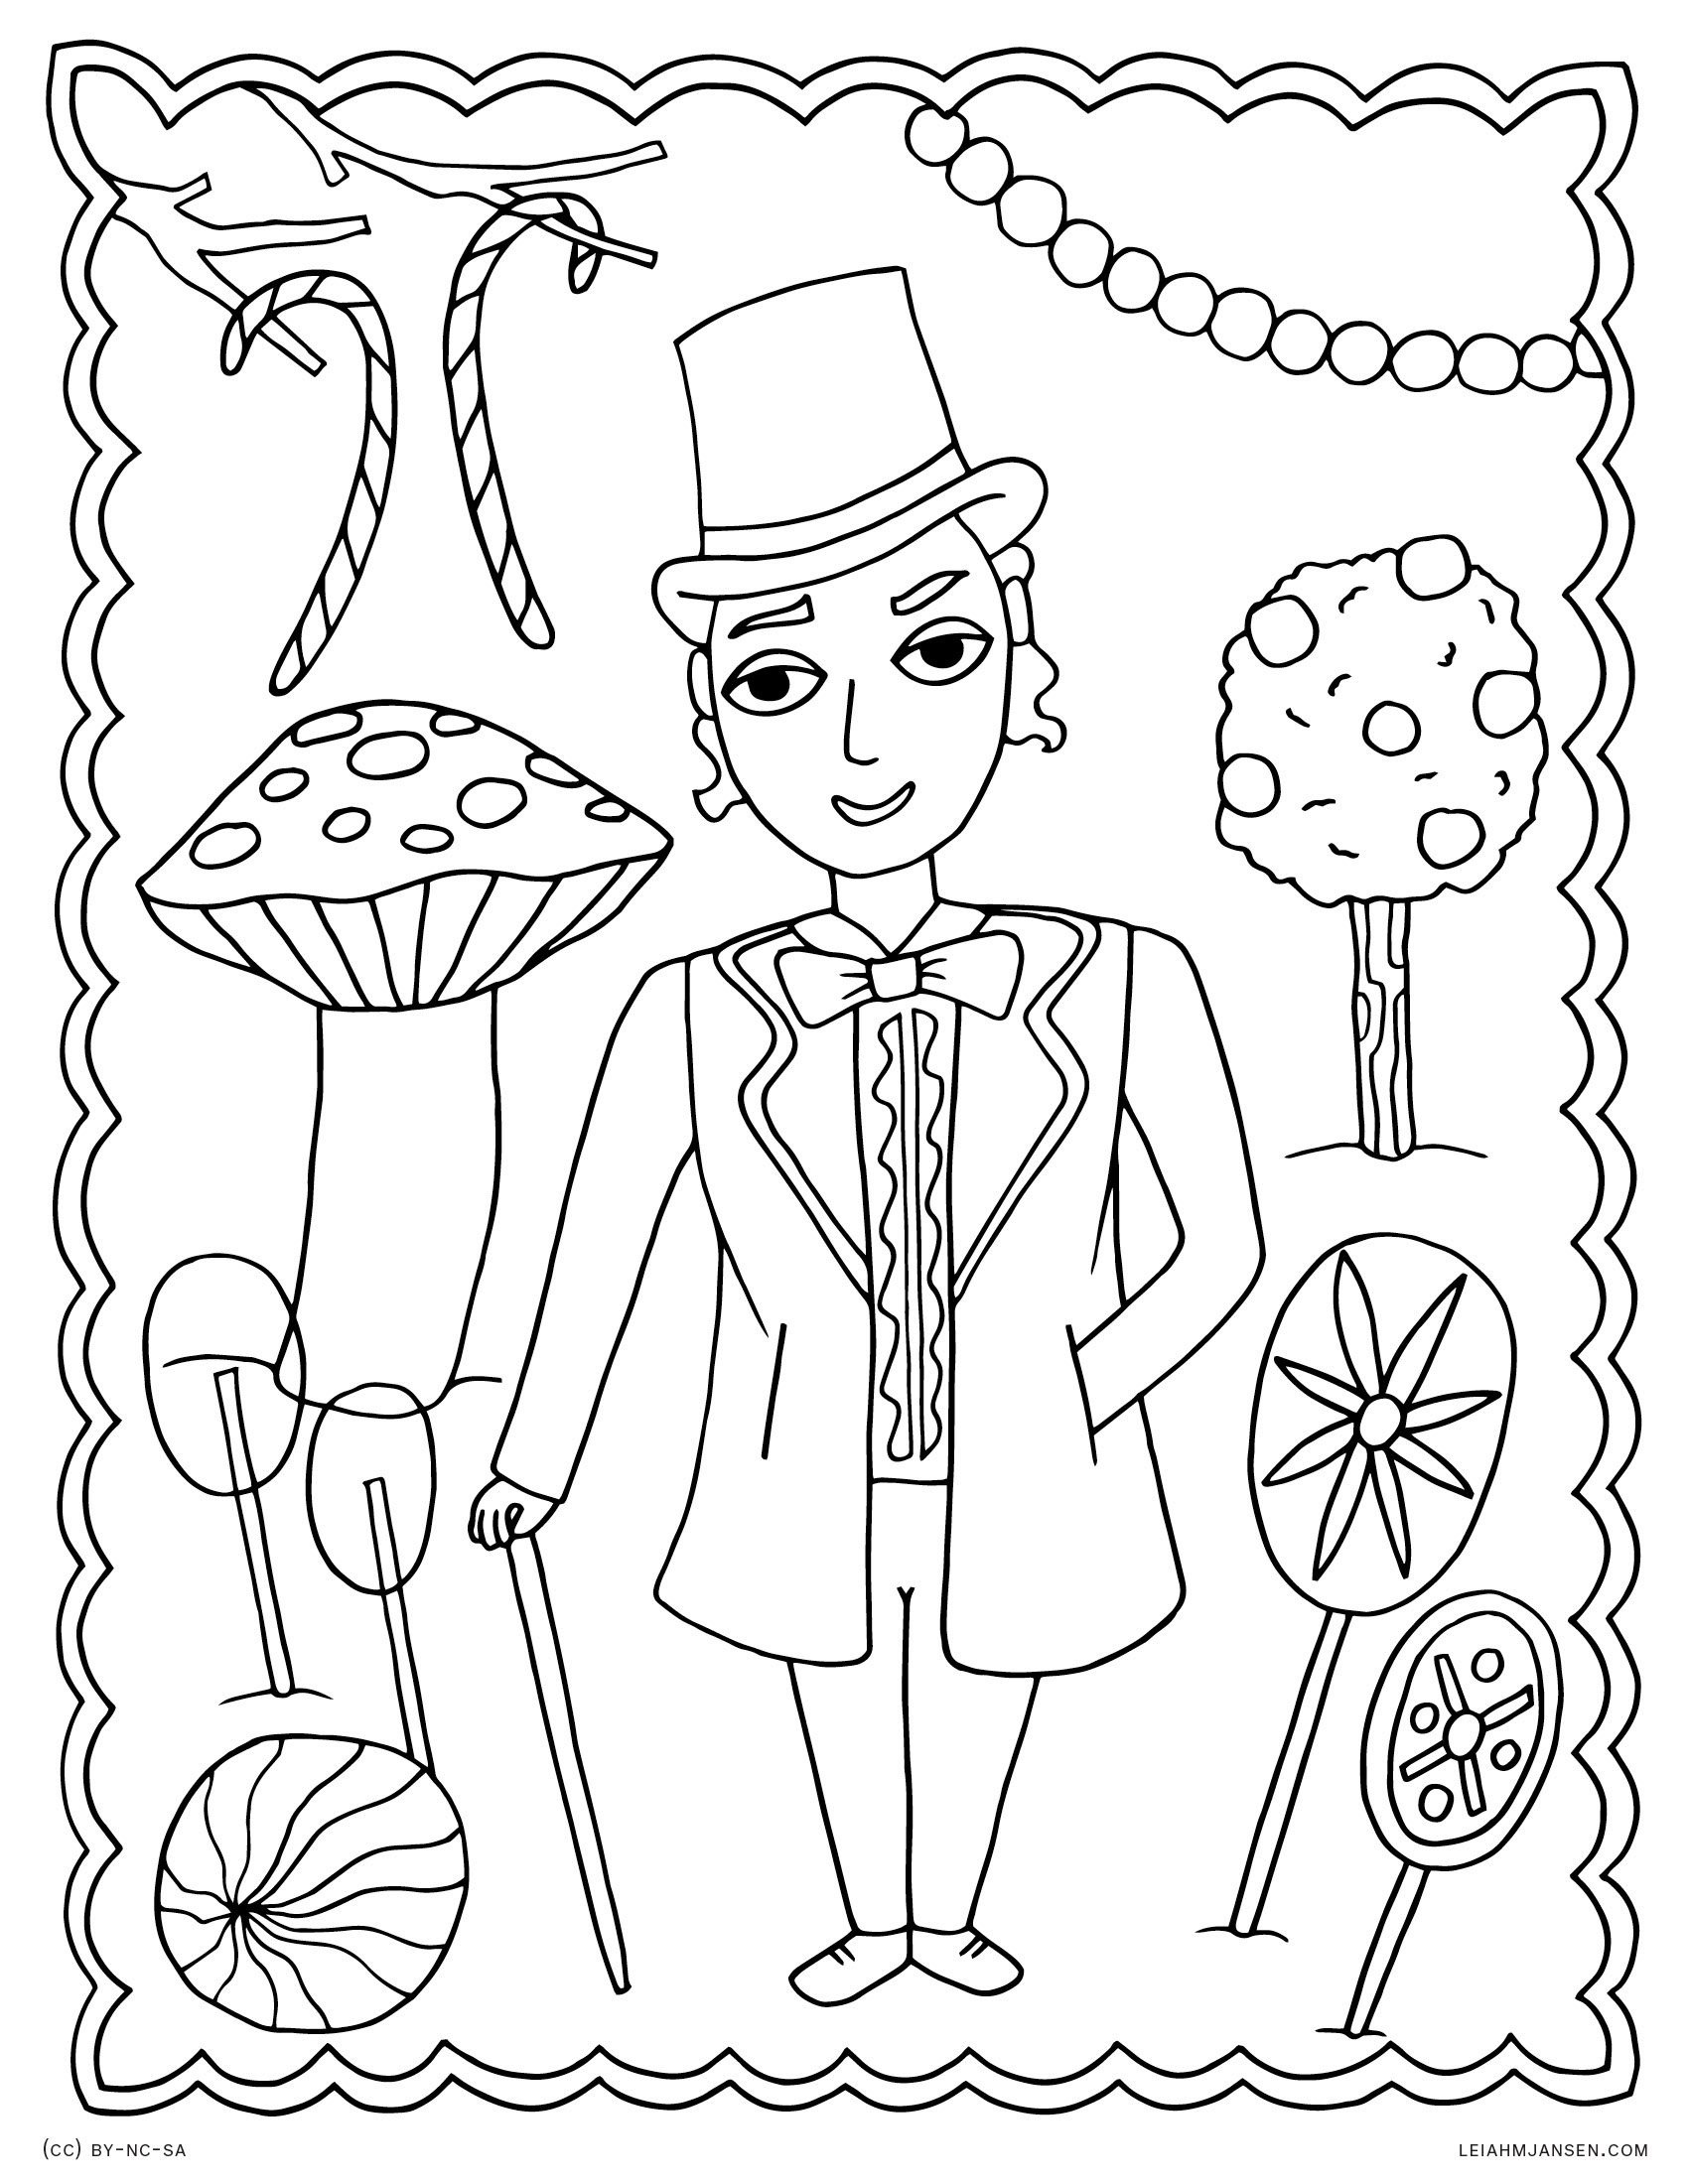 willy wonka and the chocolate factory coloring pages willy wonka and the chocolate factory coloring pages willy pages the wonka and factory chocolate coloring